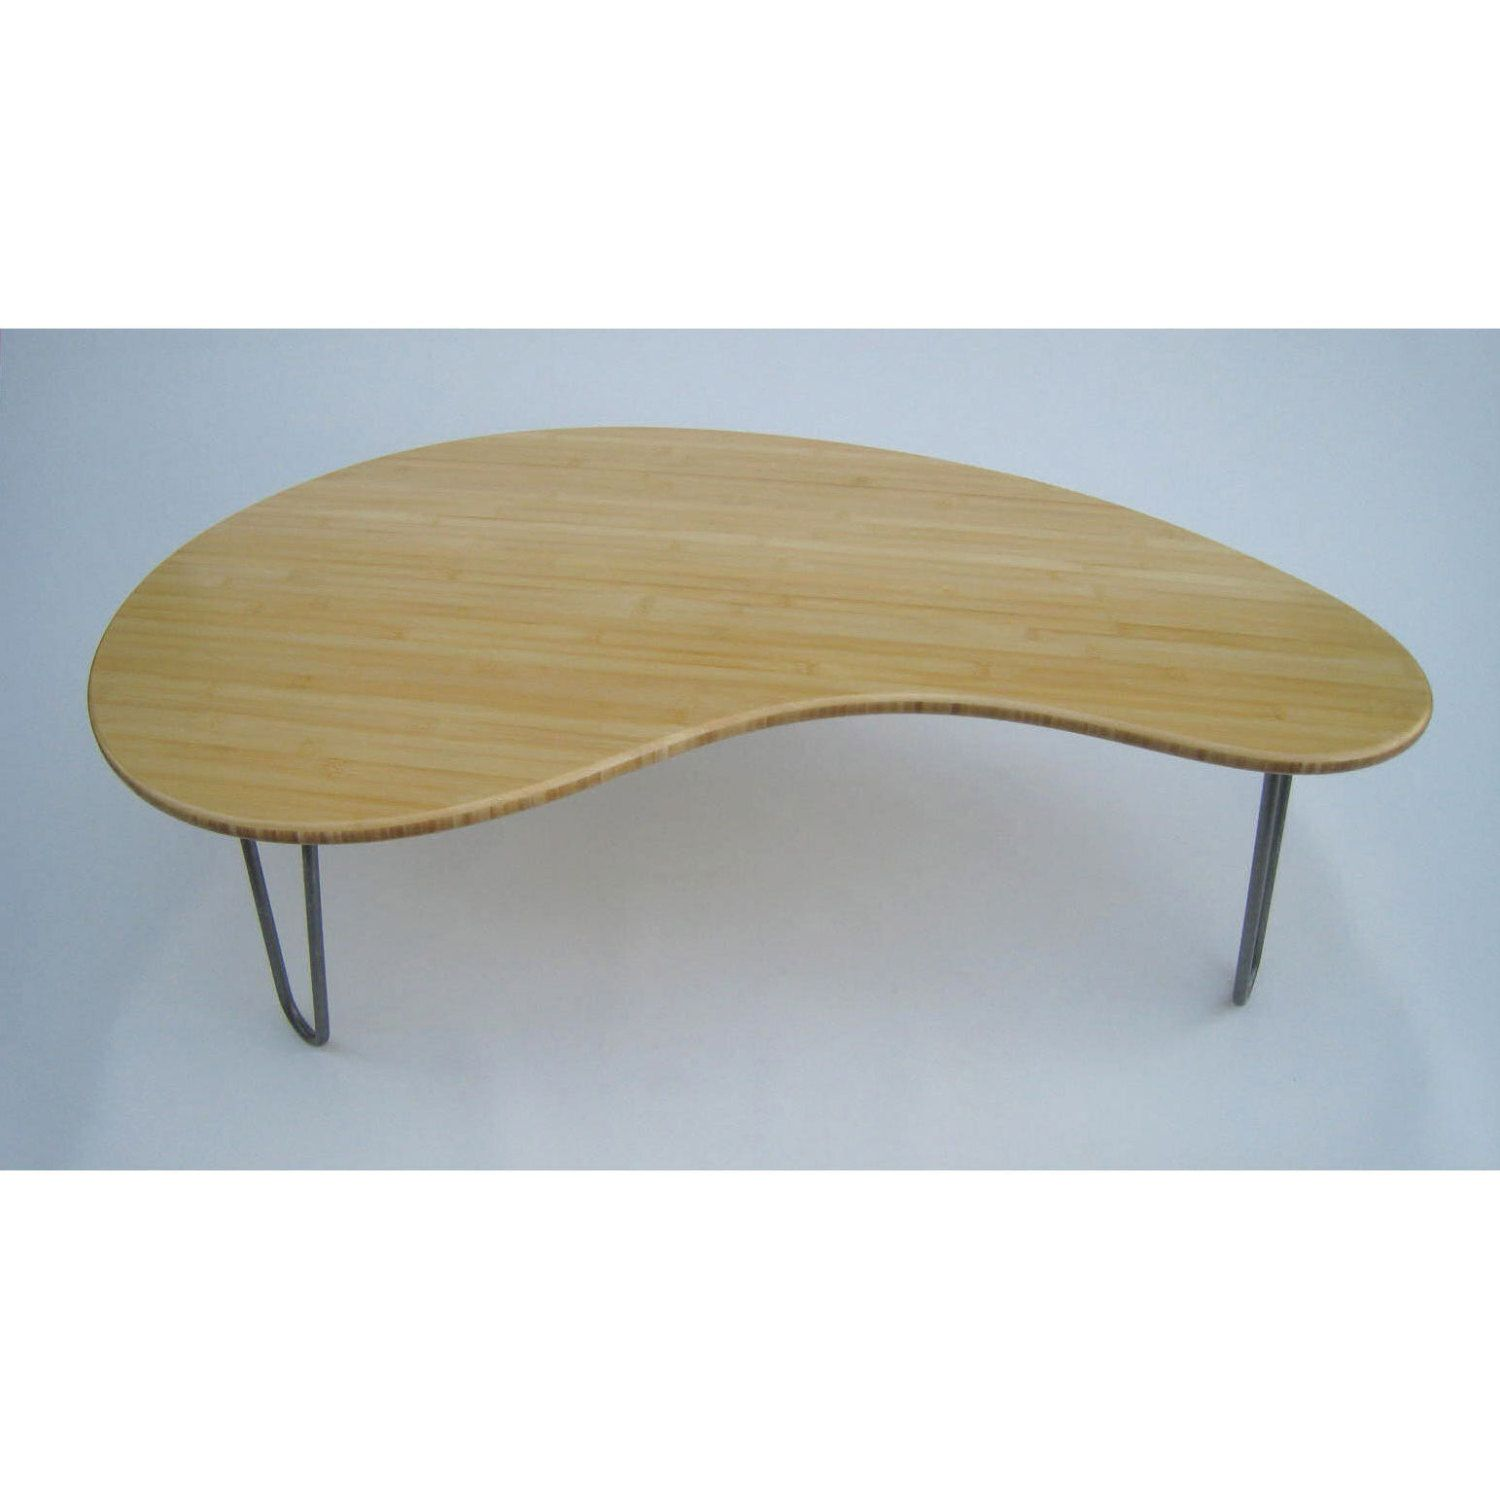 Mid Century Modern Coffee Table Kidney Bean Shaped Amorphic Curves Atomic Era Design In Natural Bamboo By Studio1212furniture On Etsy